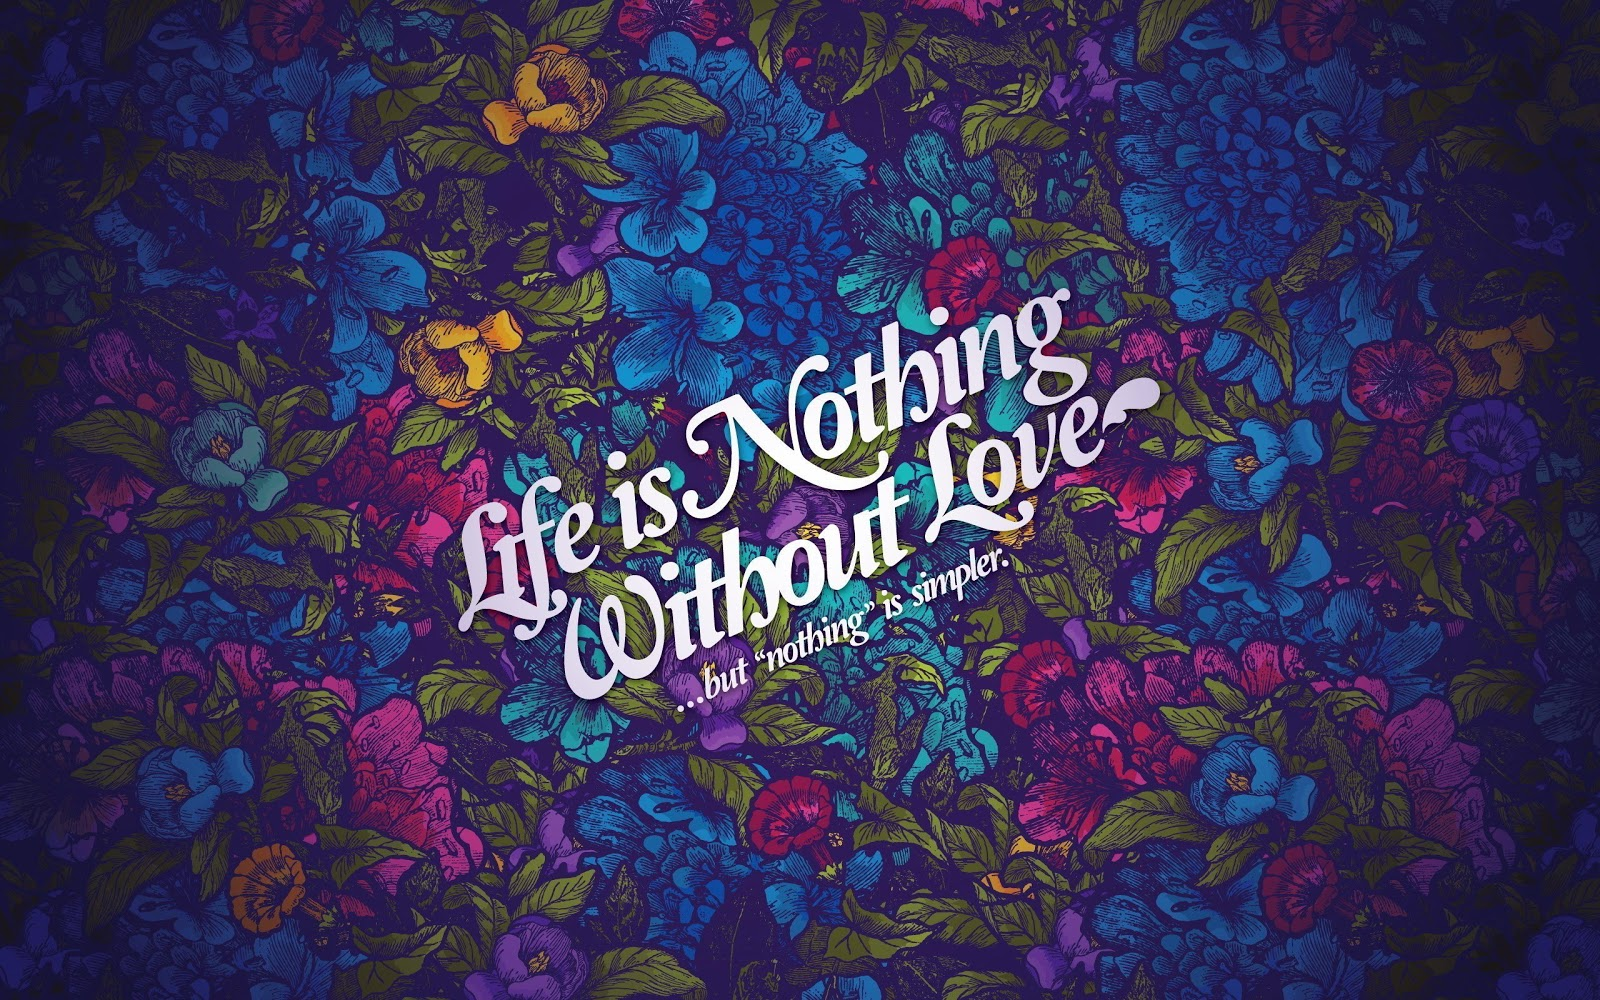 hd wallpaper download love hd wallpapers life nothing